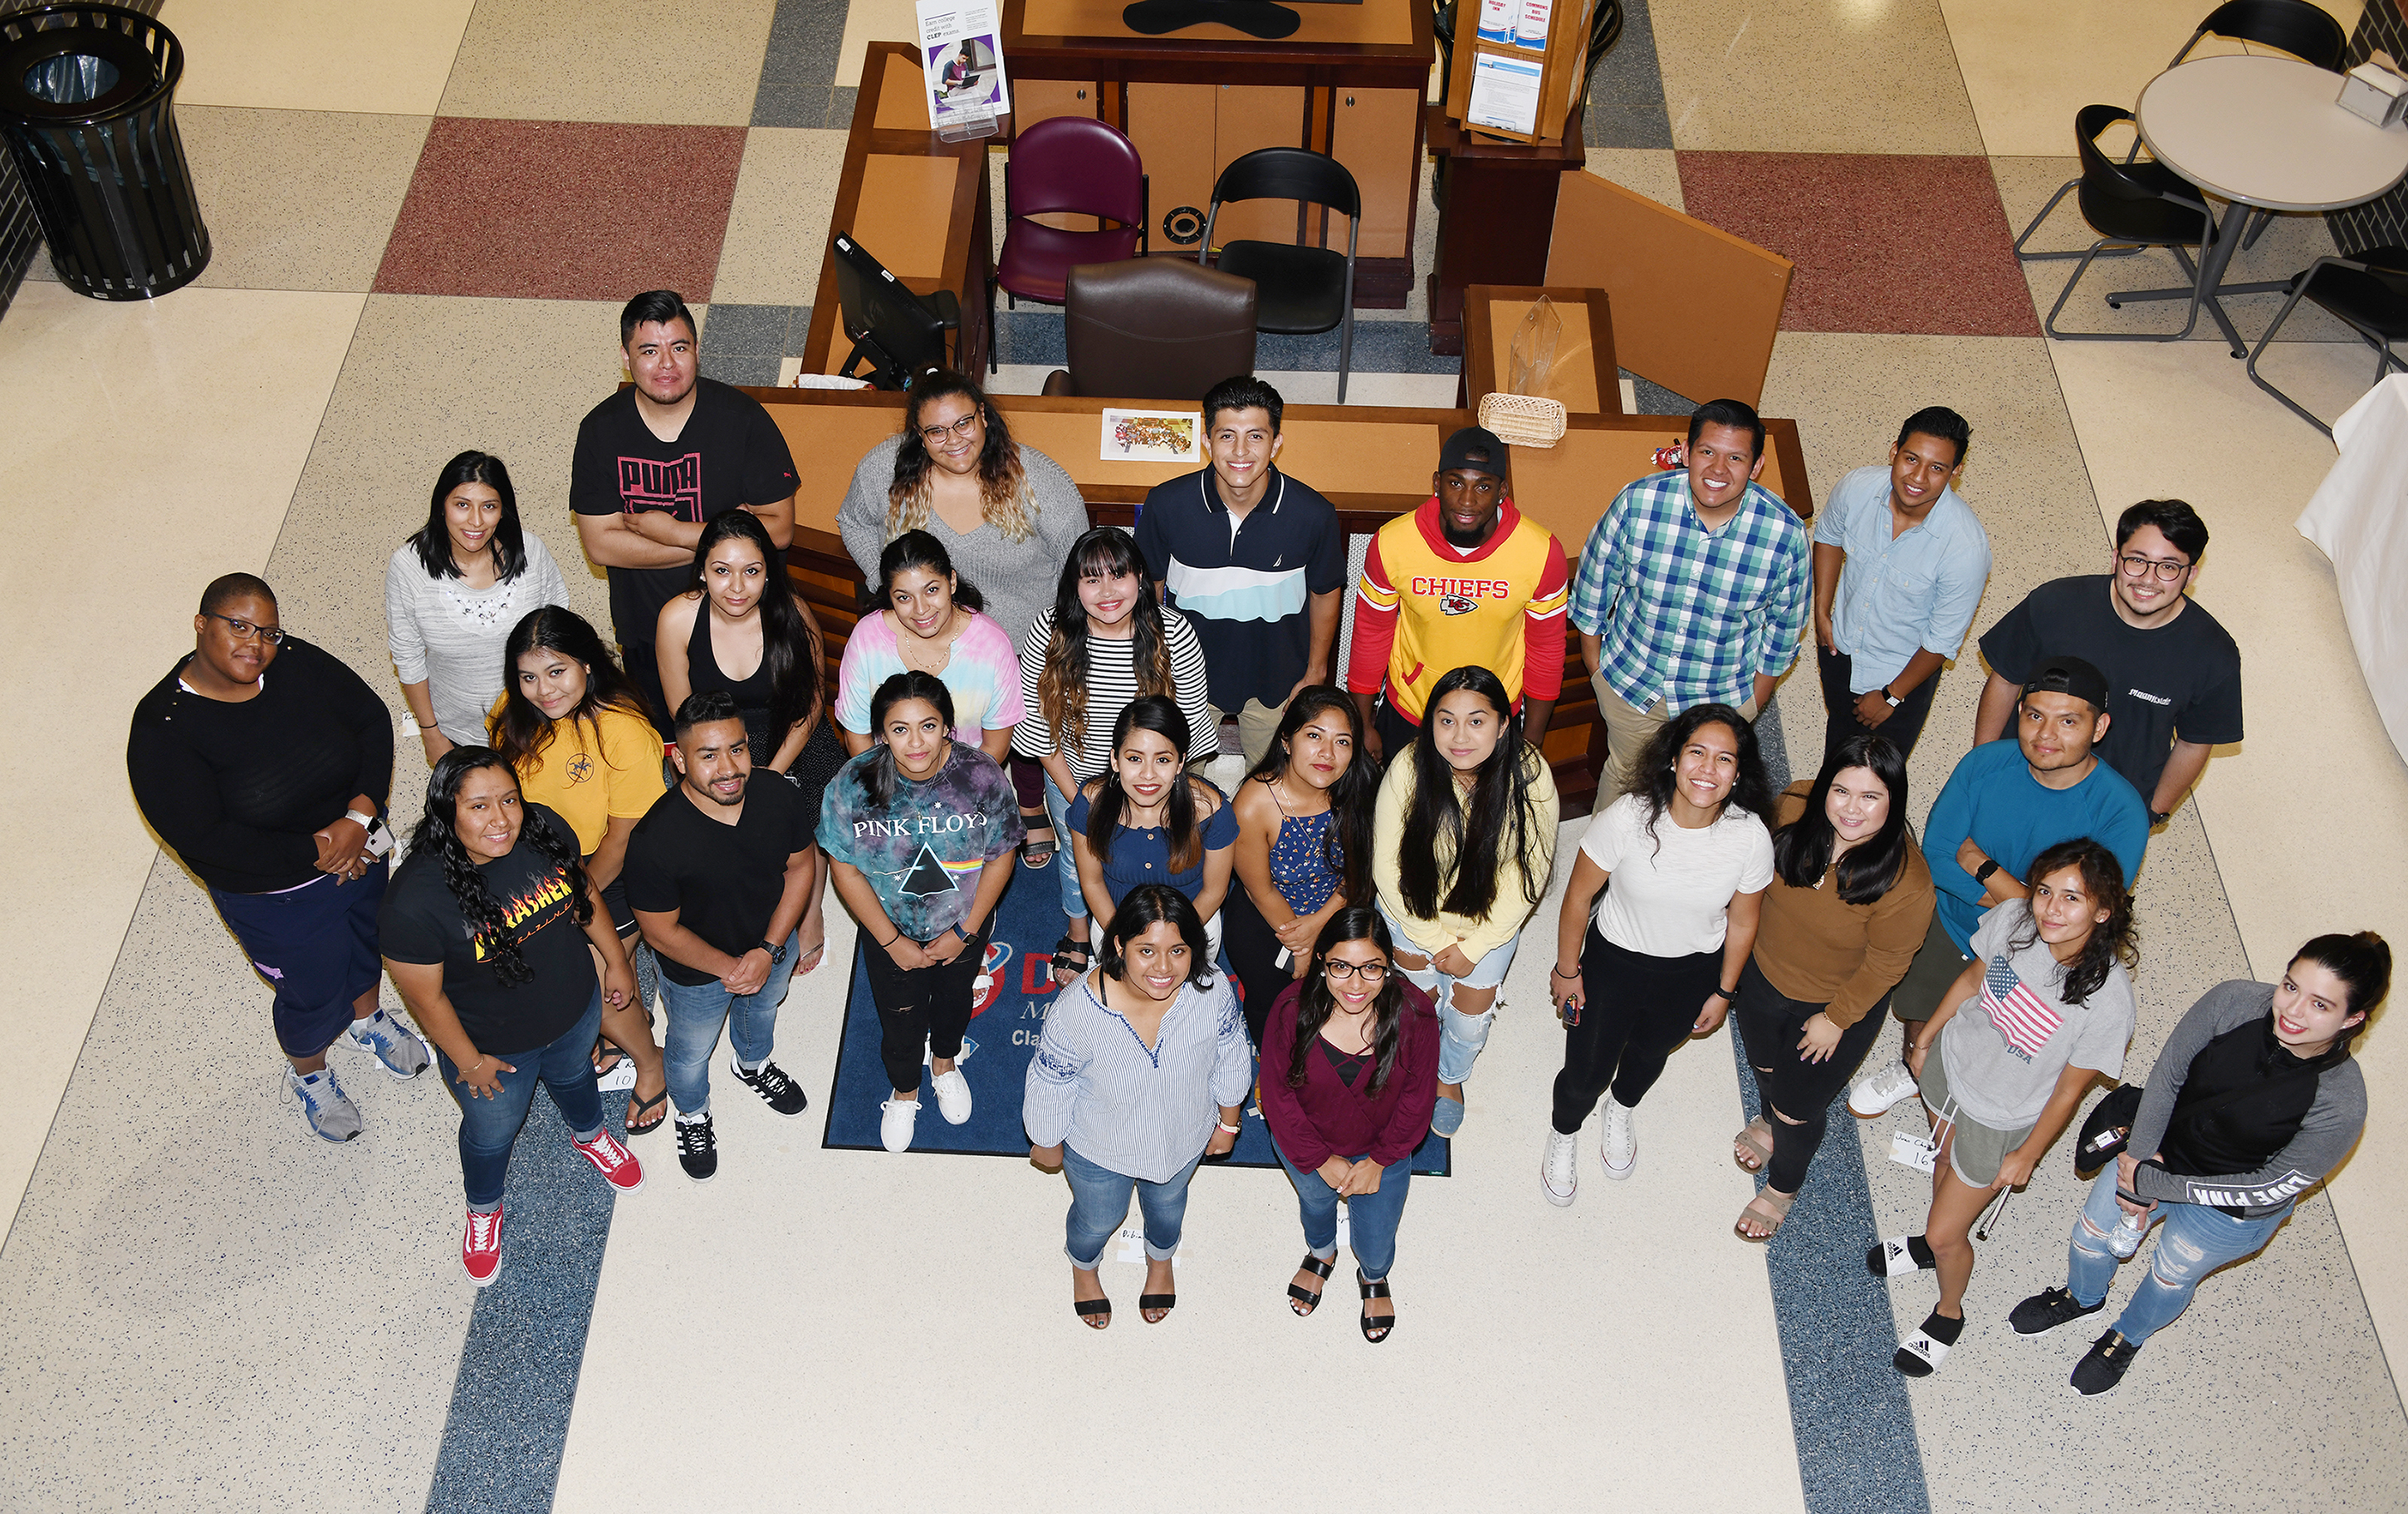 This group of Dreamers were the first to enroll at Delaware State University in 2016 as part of the Opportunity Scholarship Program. On May 16, they became the first Dreamer group to graduate.